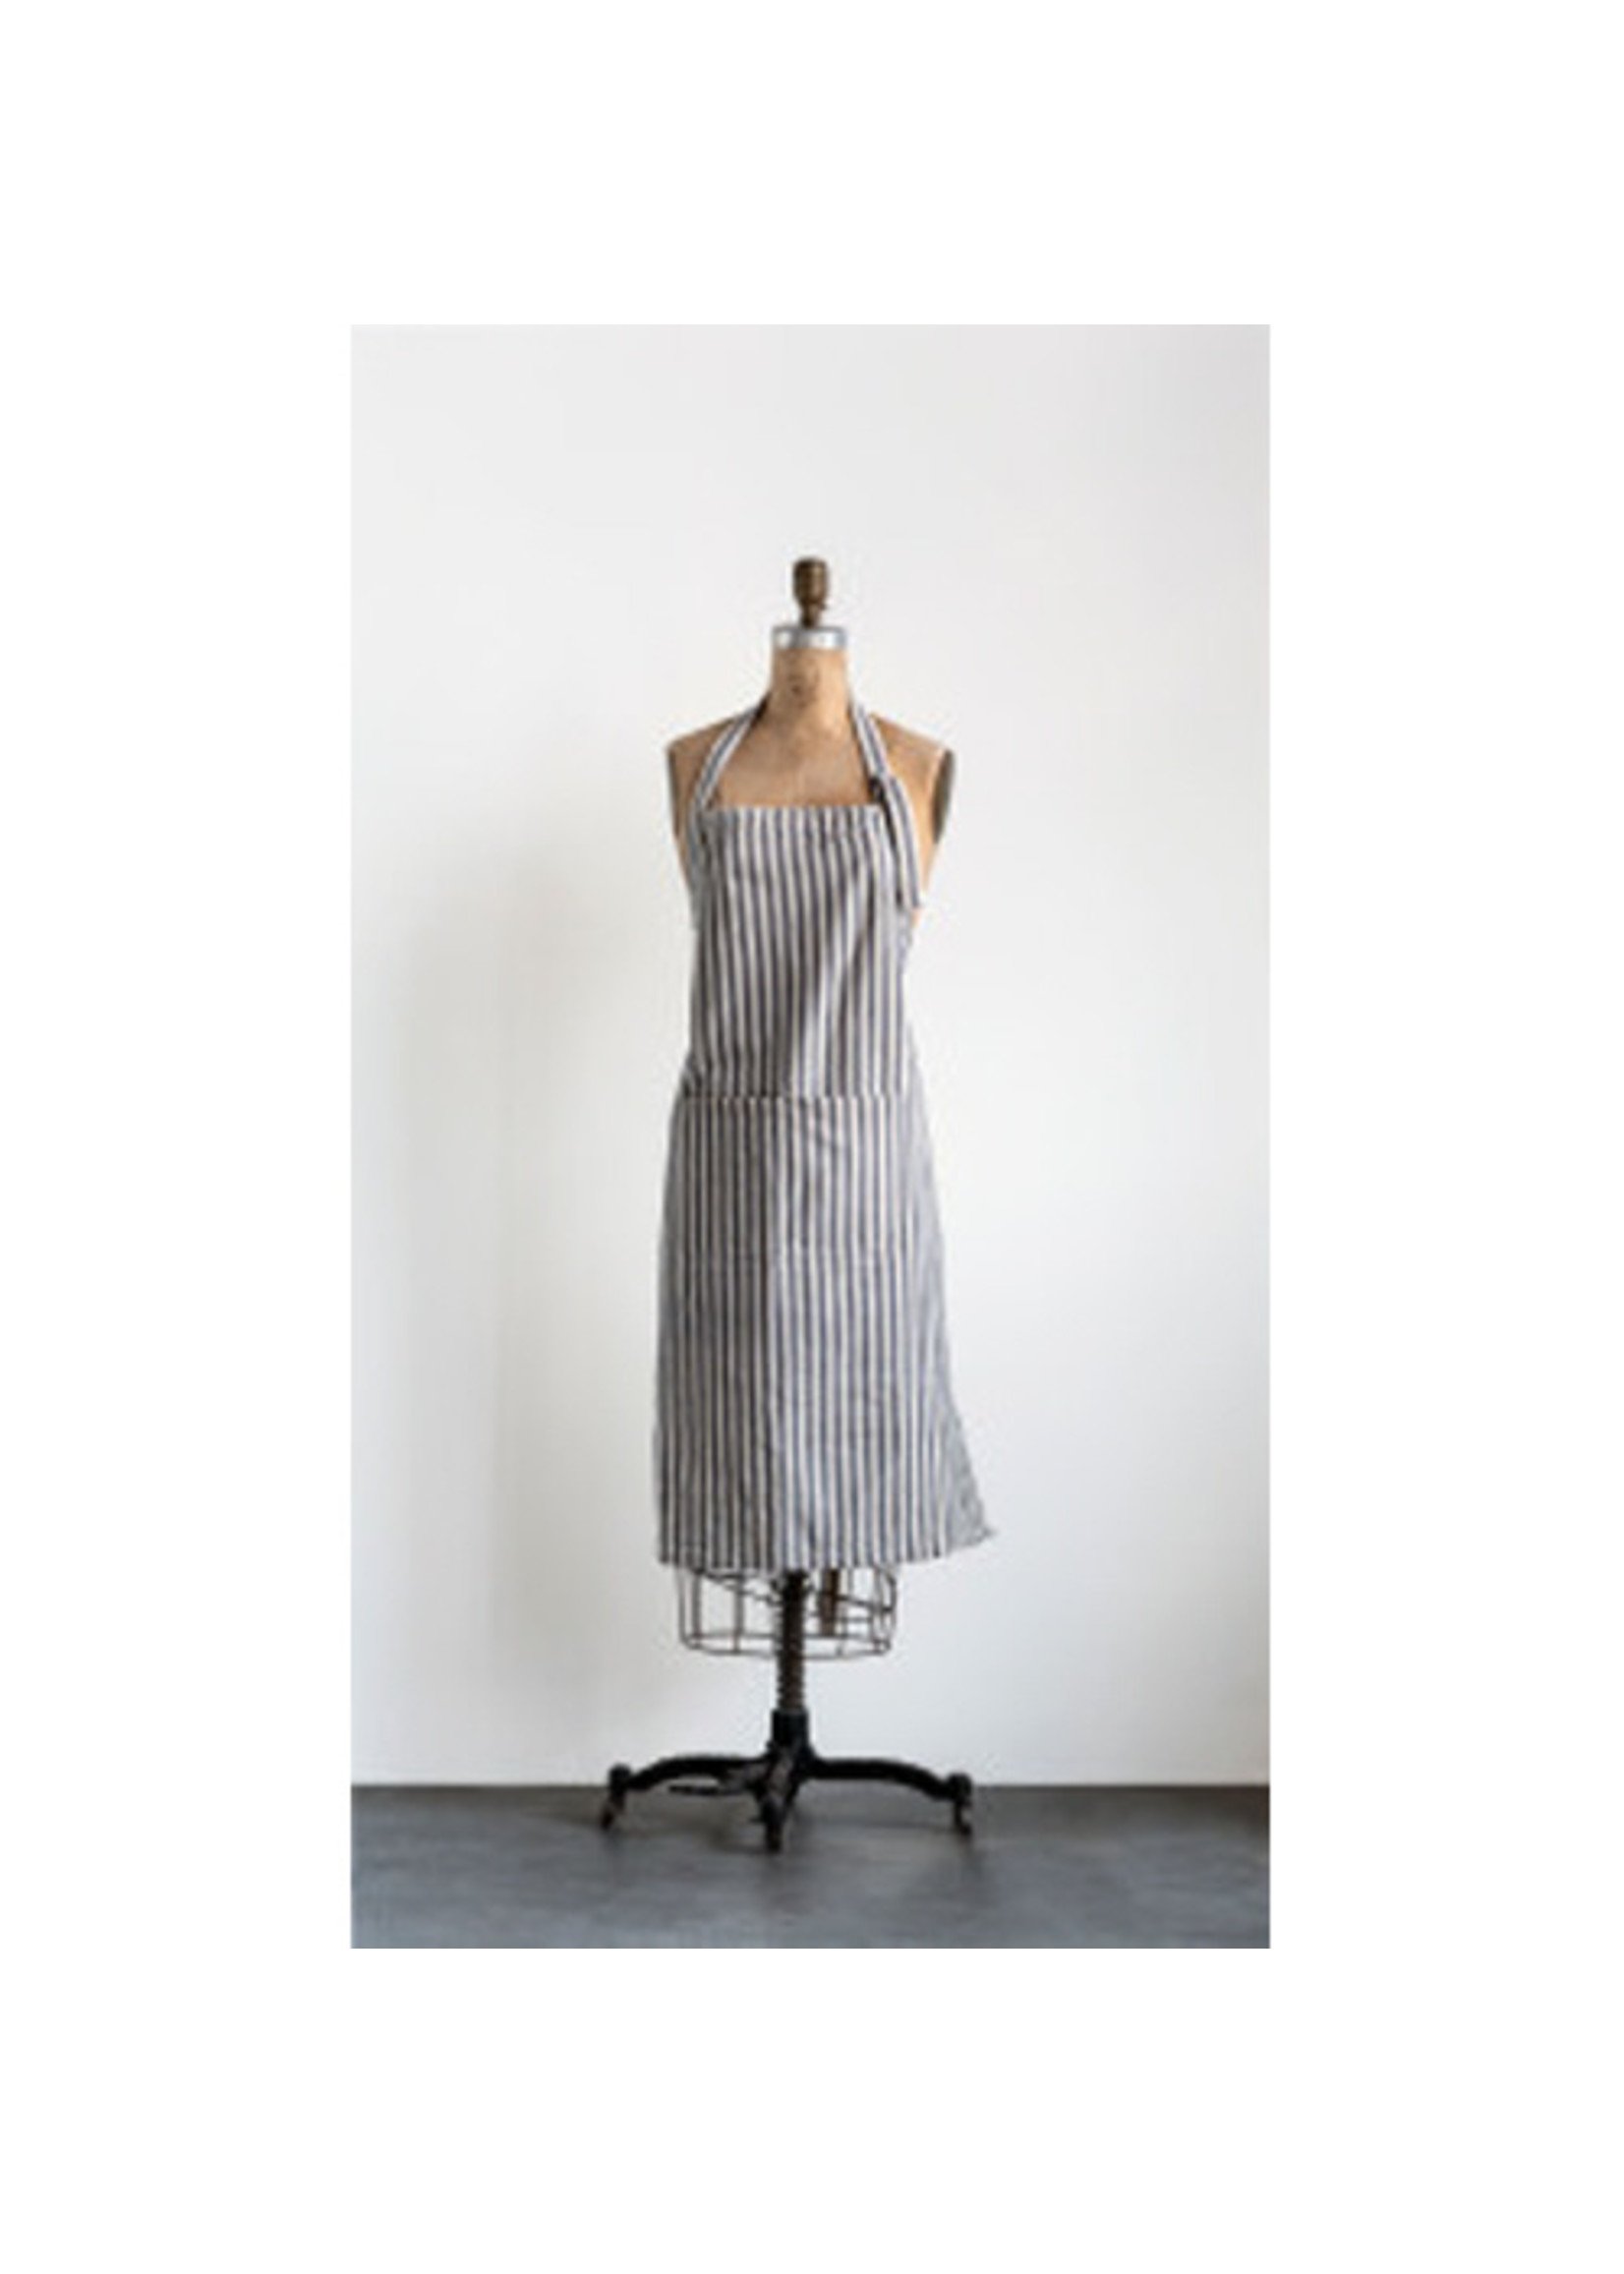 Cotton Striped Apron with Pocket